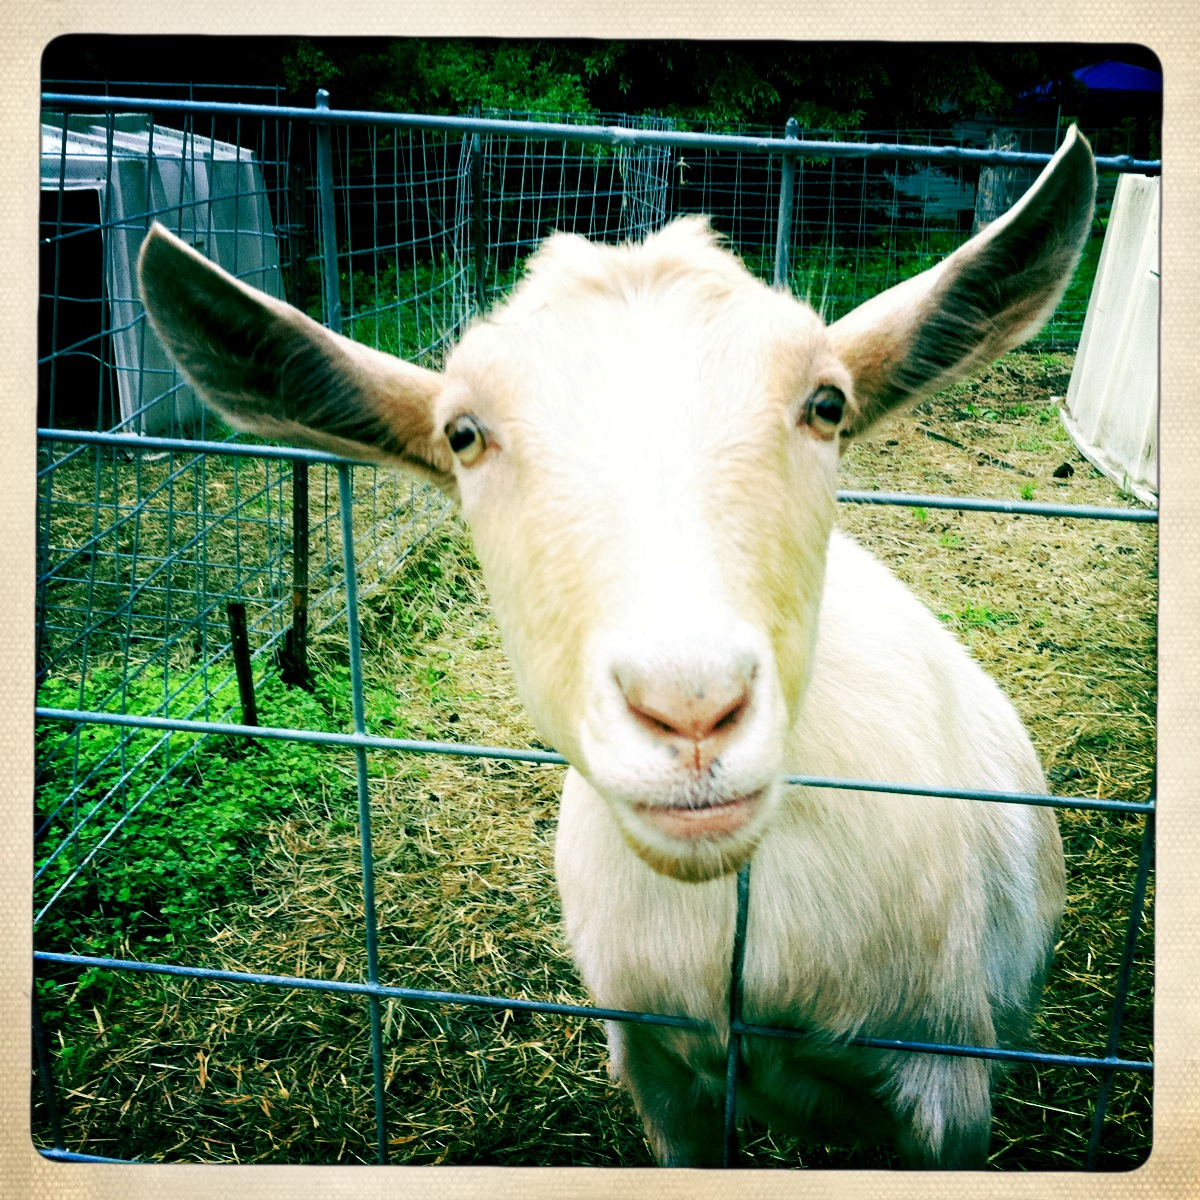 About that goat farm…